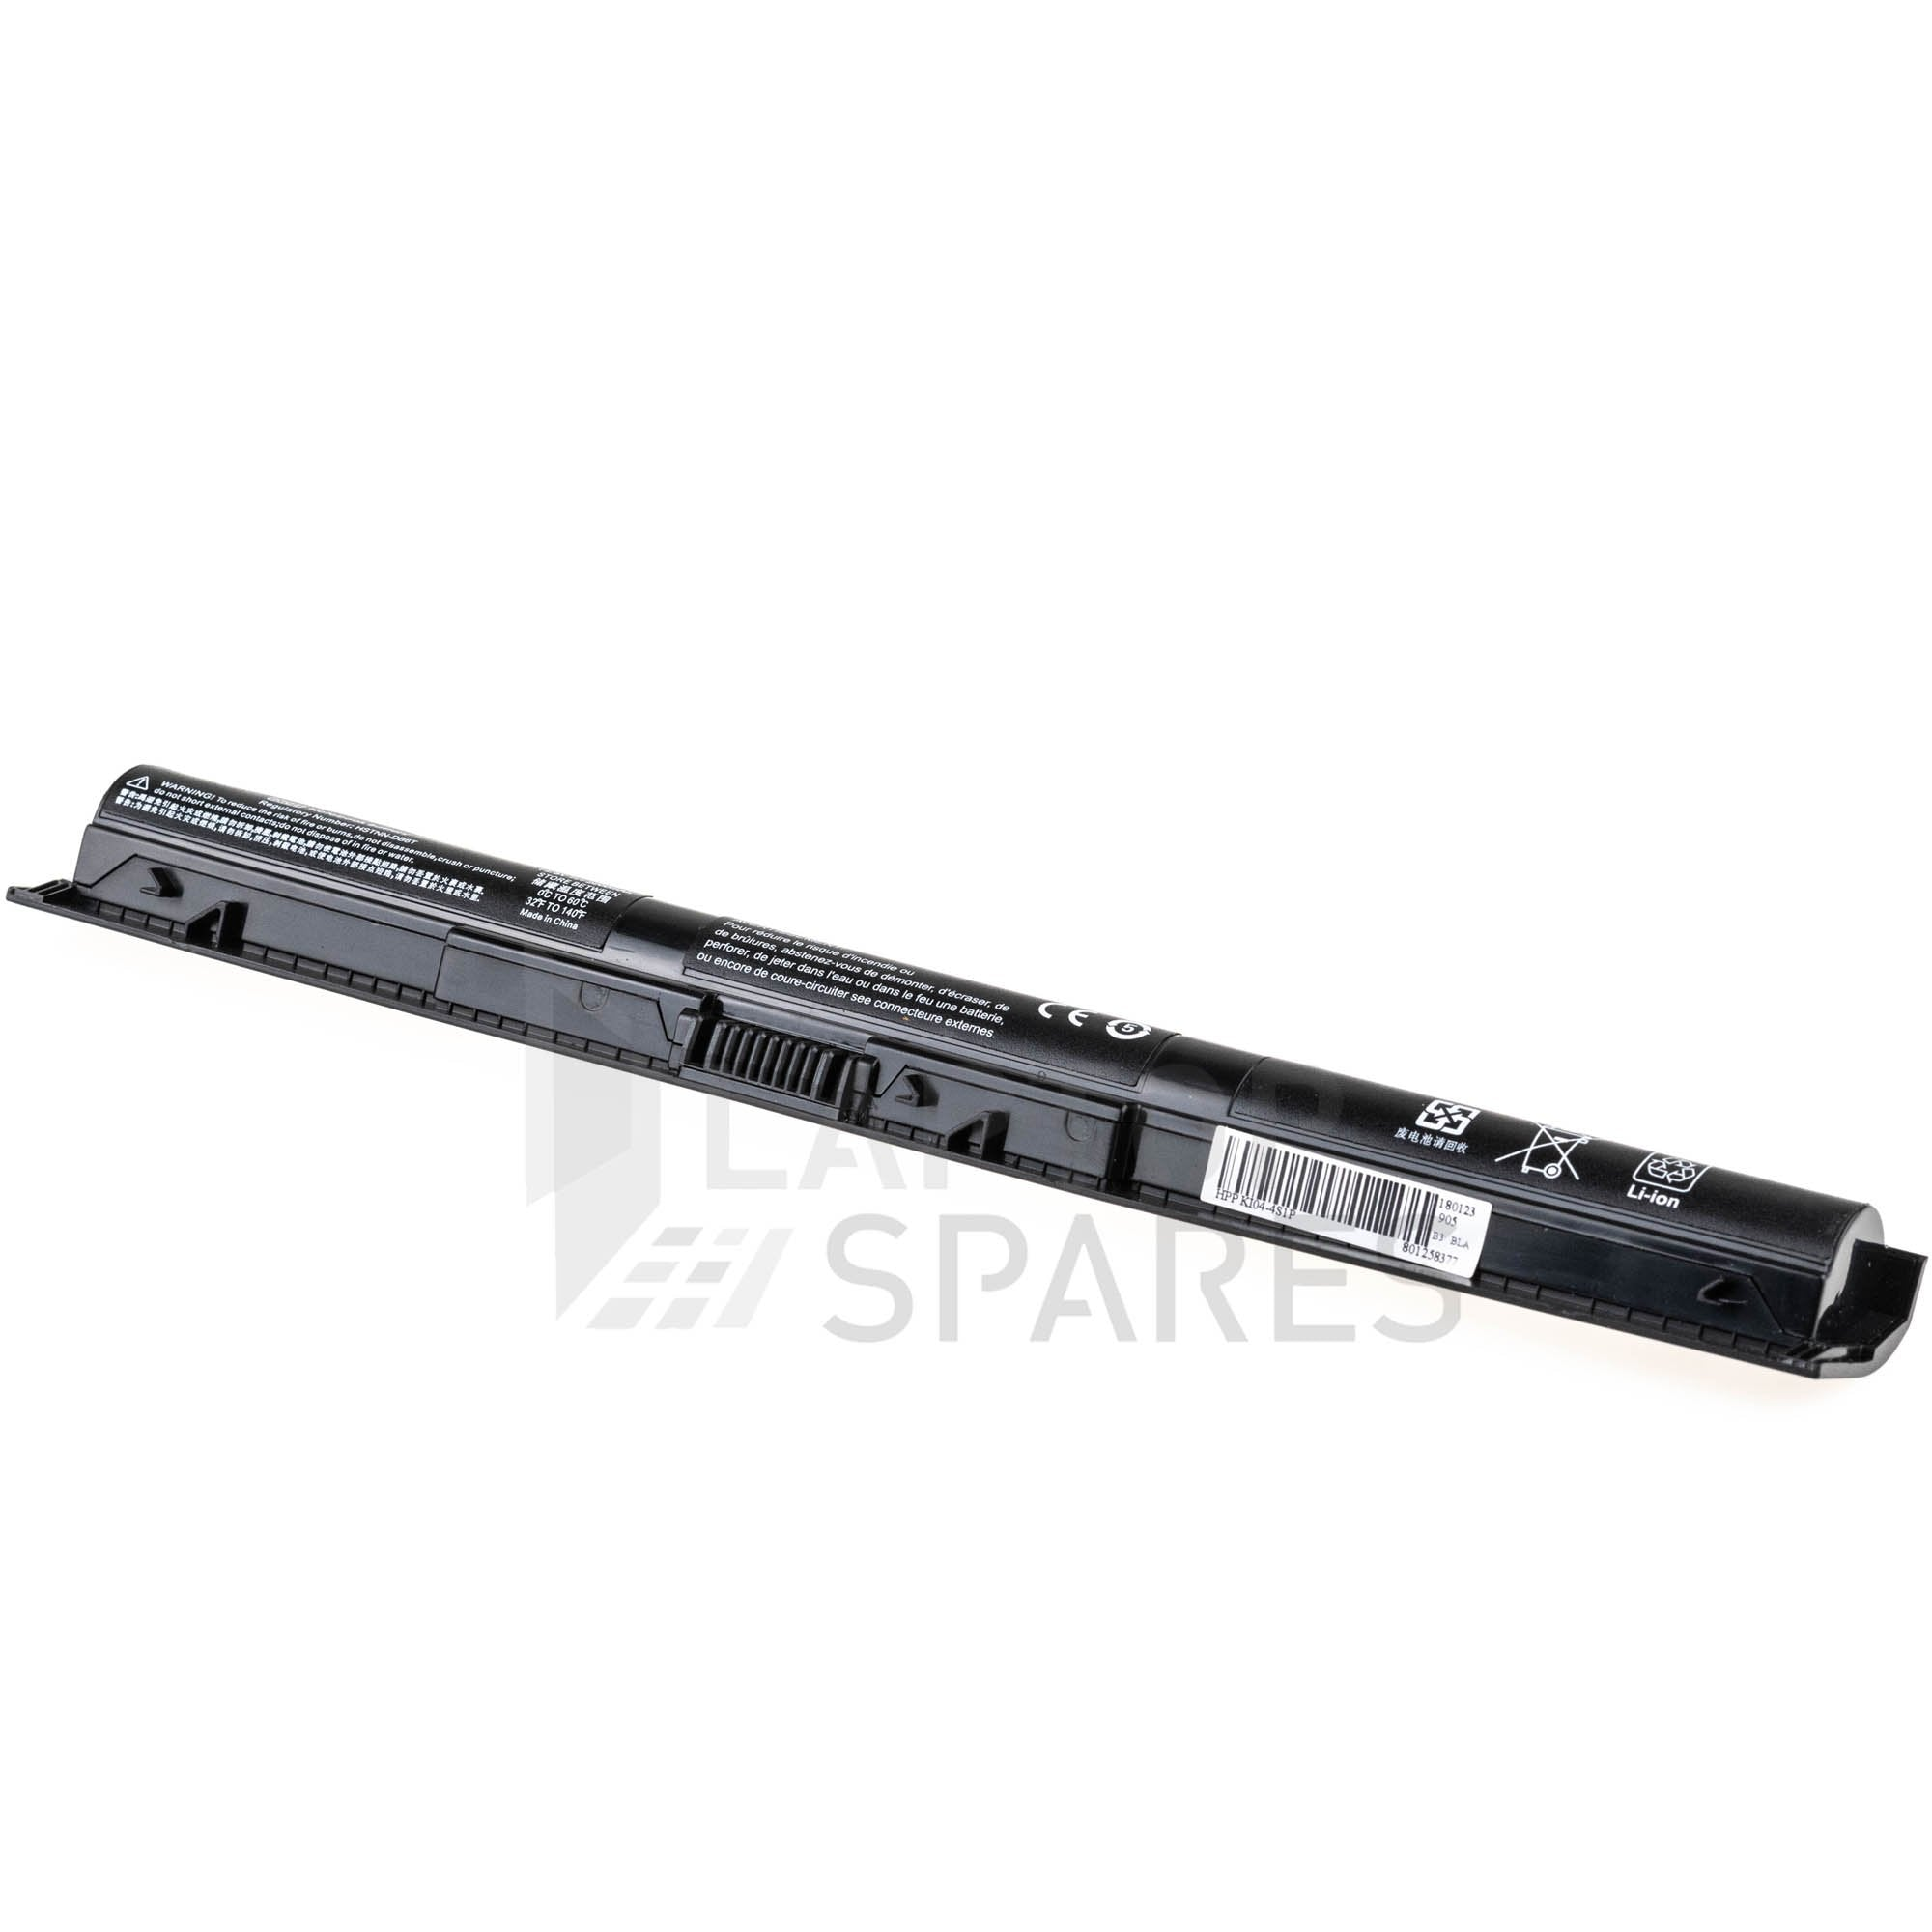 HP Pavilion NoteBook 17 g190cy 17 g191cy 17 g192cy 2200mAh 4 Cell Battery